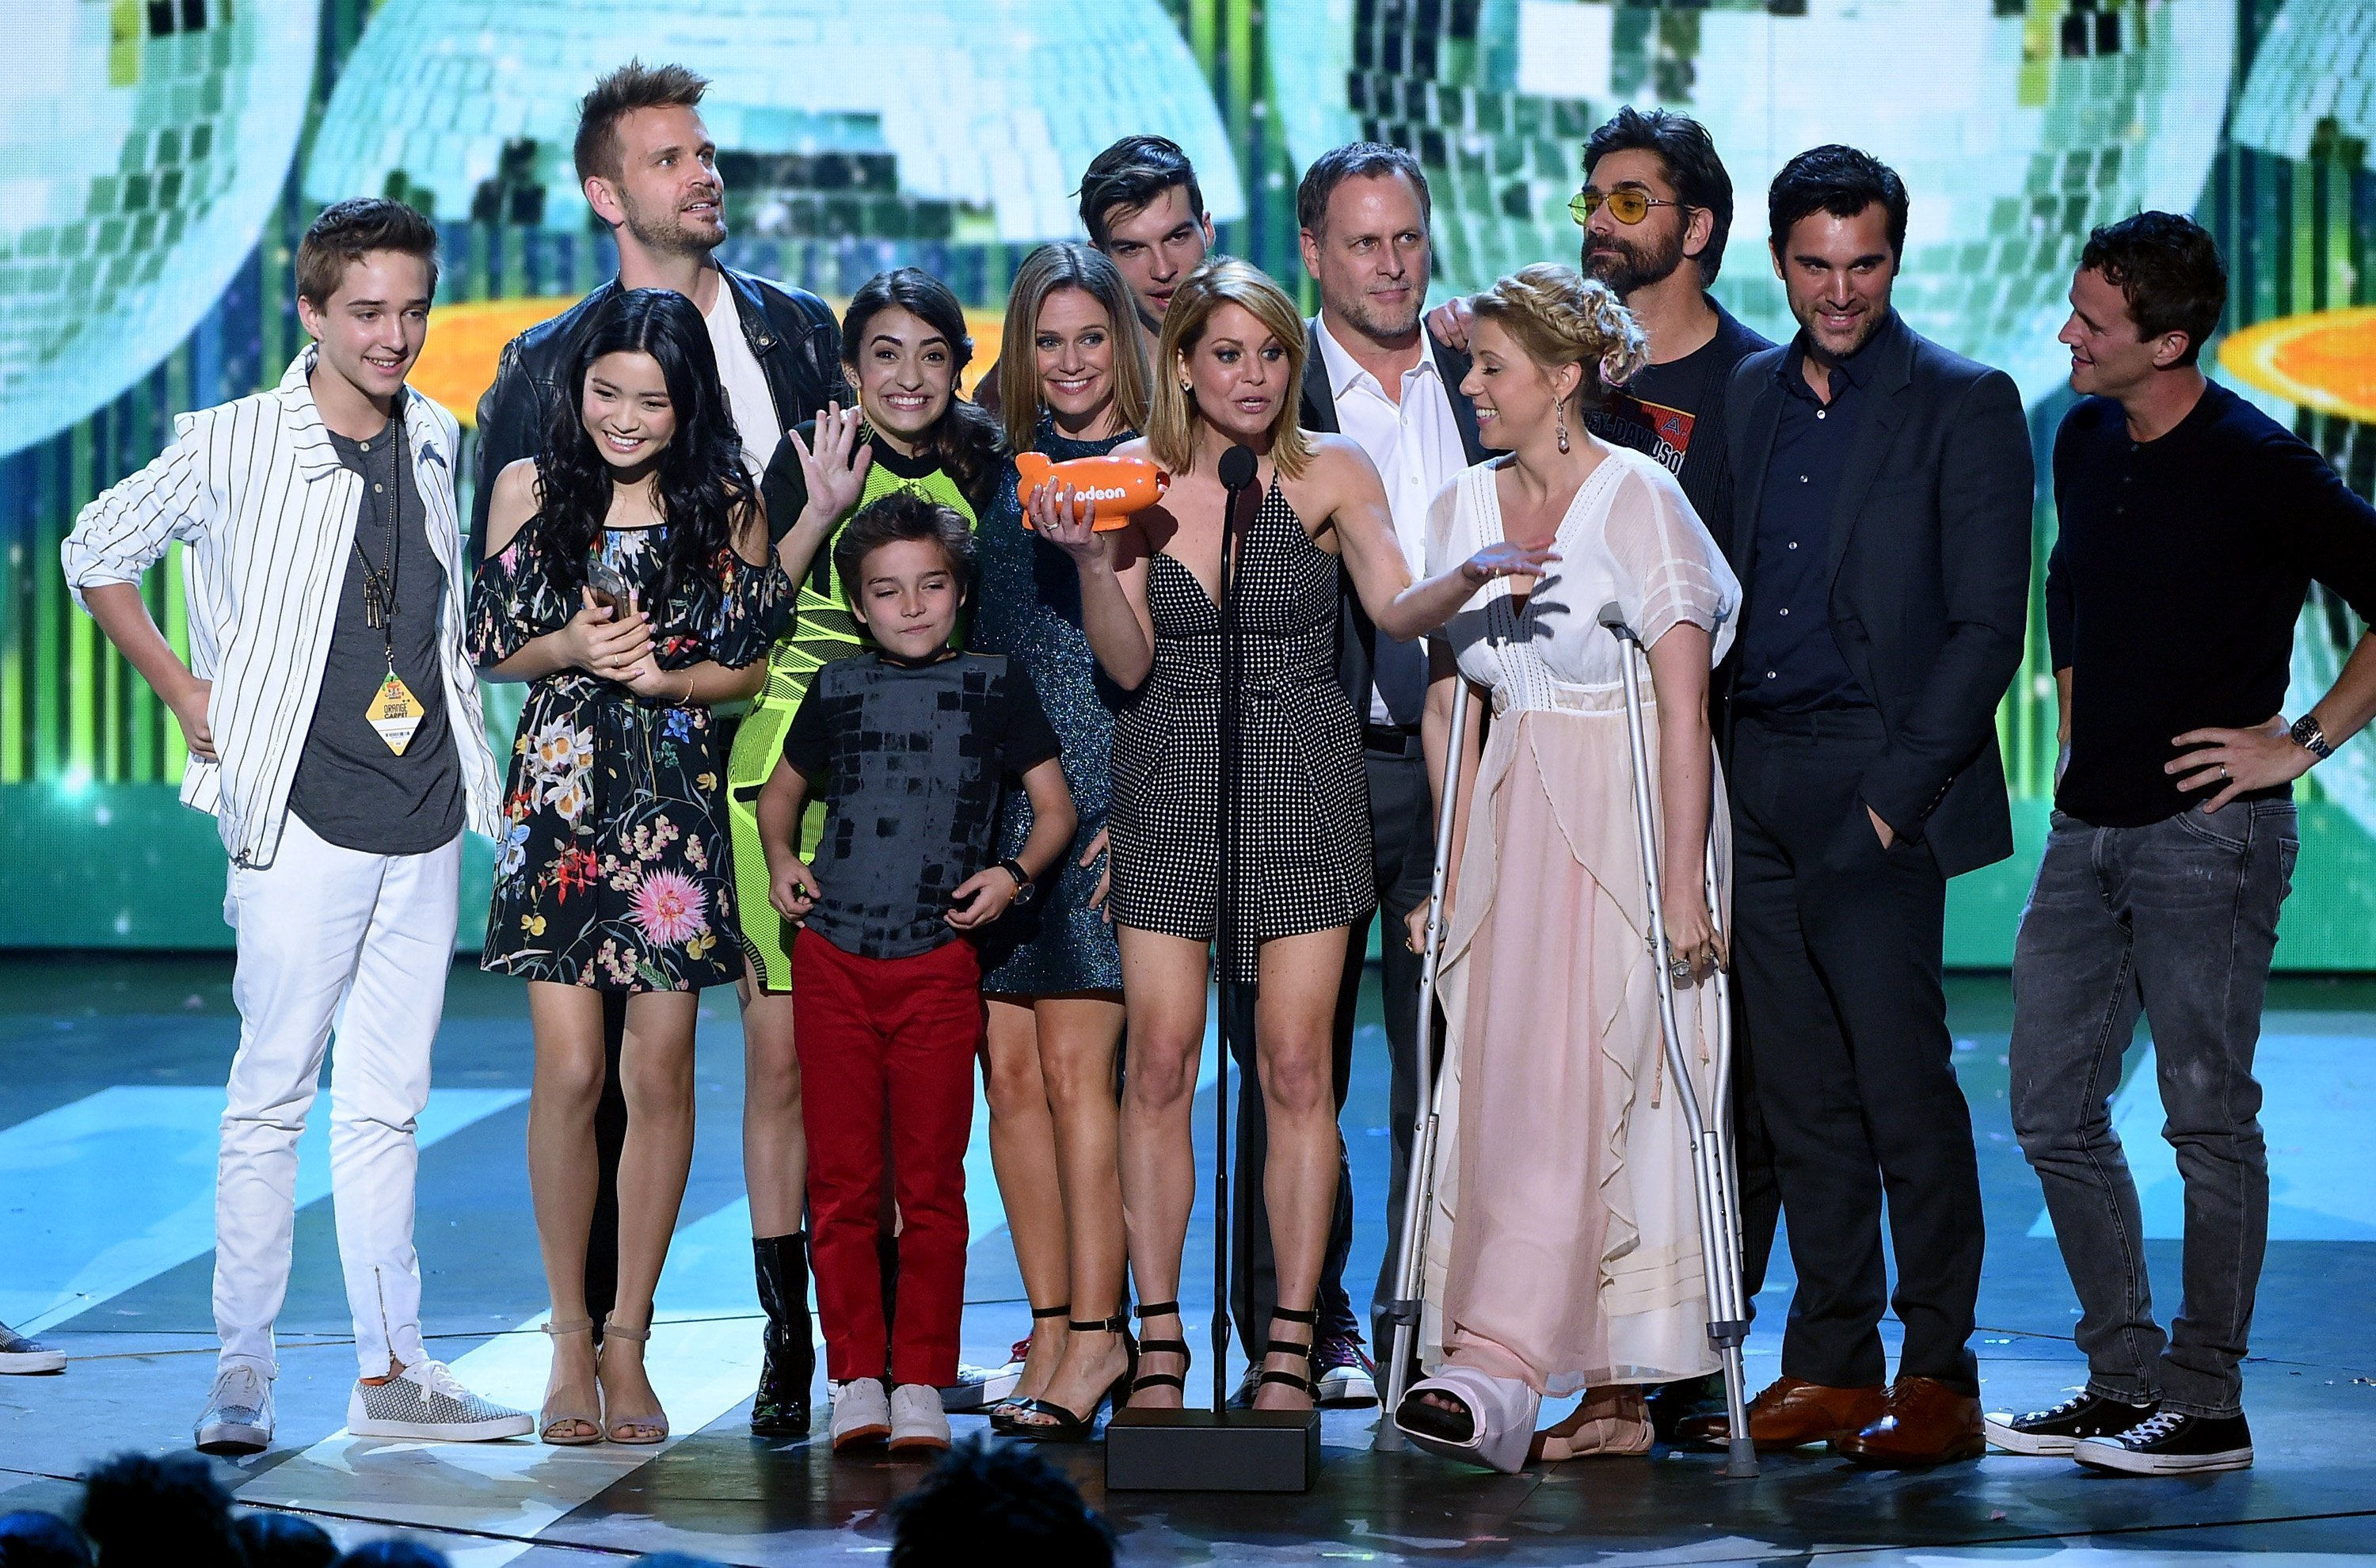 The cast of Fuller House accepts the award for Favorite TV Show – Family Show onstage at Nickelodeon's 2017 Kids' Choice Awards at USC Galen Center on March 11, 2017, in Los Angeles, California. | Source: Getty Images.